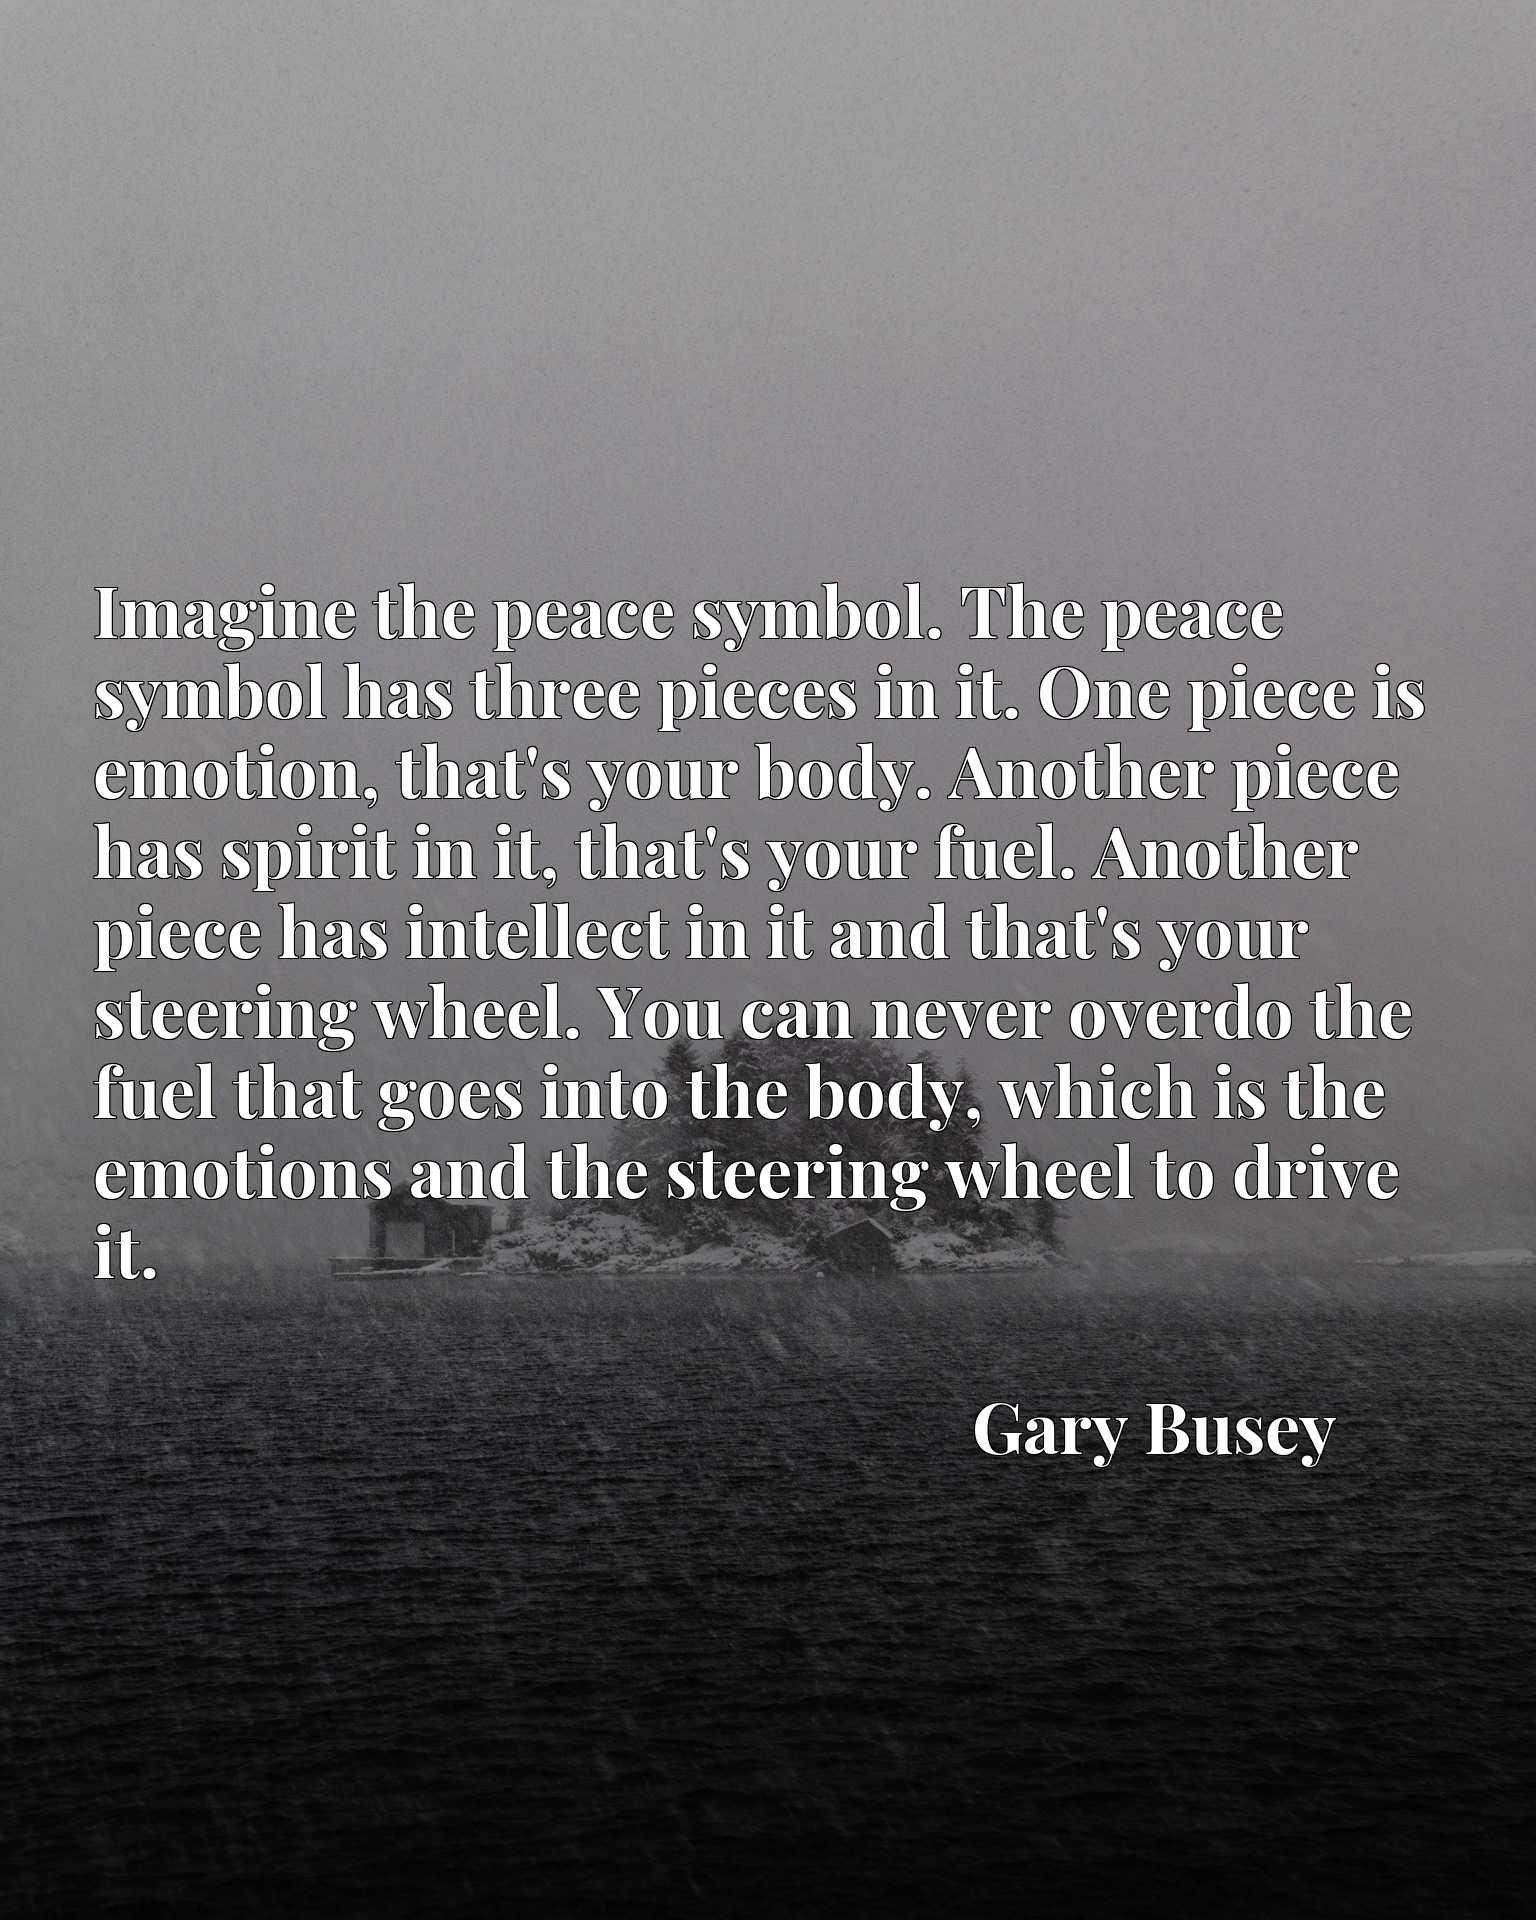 Imagine the peace symbol. The peace symbol has three pieces in it. One piece is emotion, that's your body. Another piece has spirit in it, that's your fuel. Another piece has intellect in it and that's your steering wheel. You can never overdo the fuel that goes into the body, which is the emotions and the steering wheel to drive it.